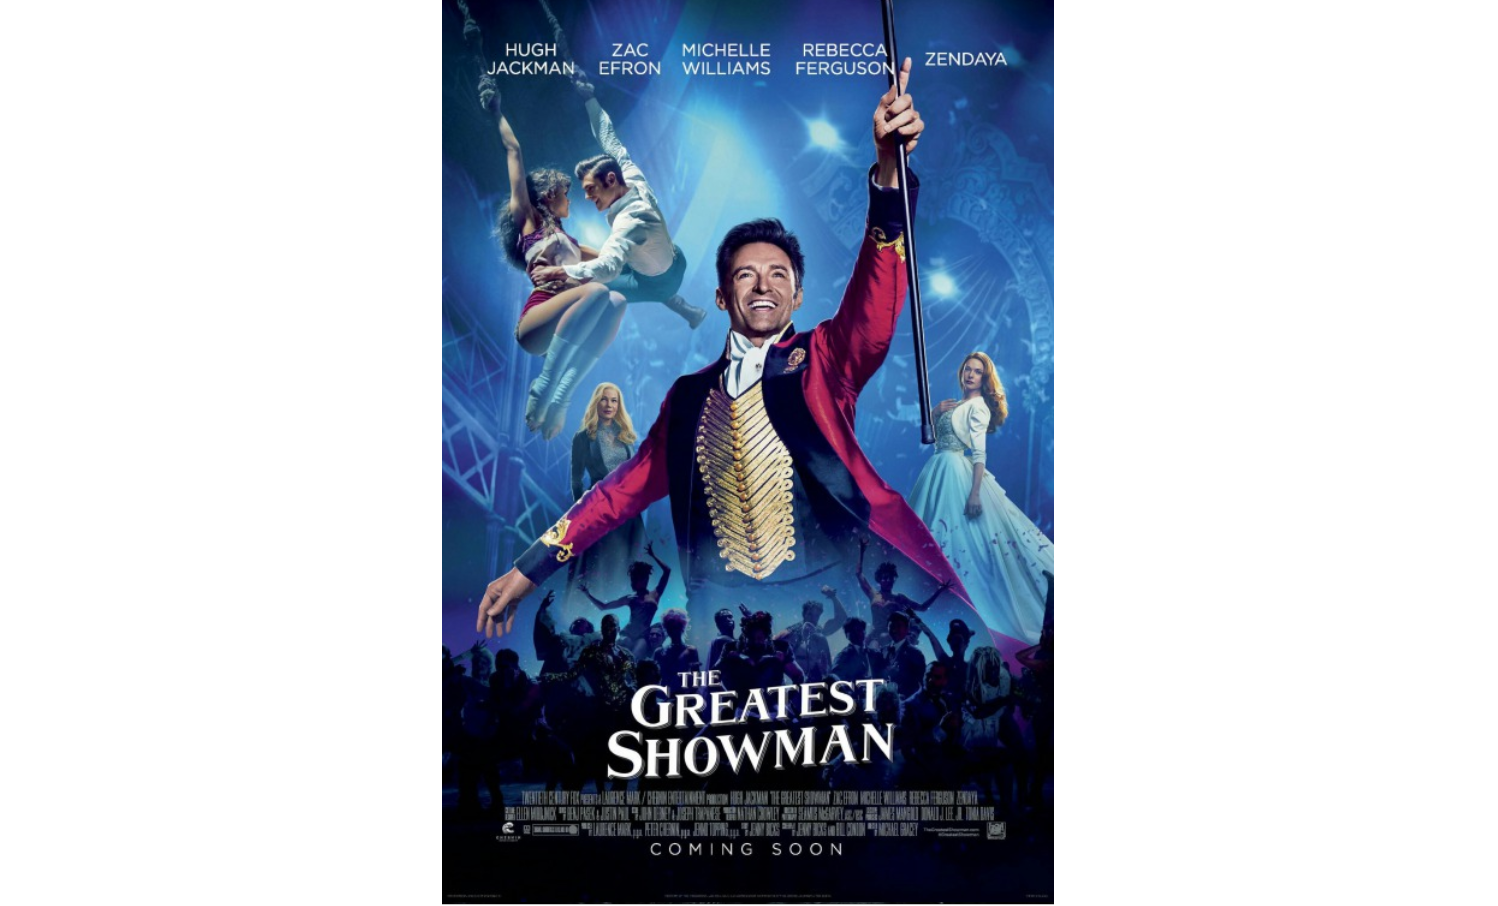 The Greatest Showman 2017 Wisconsin Union